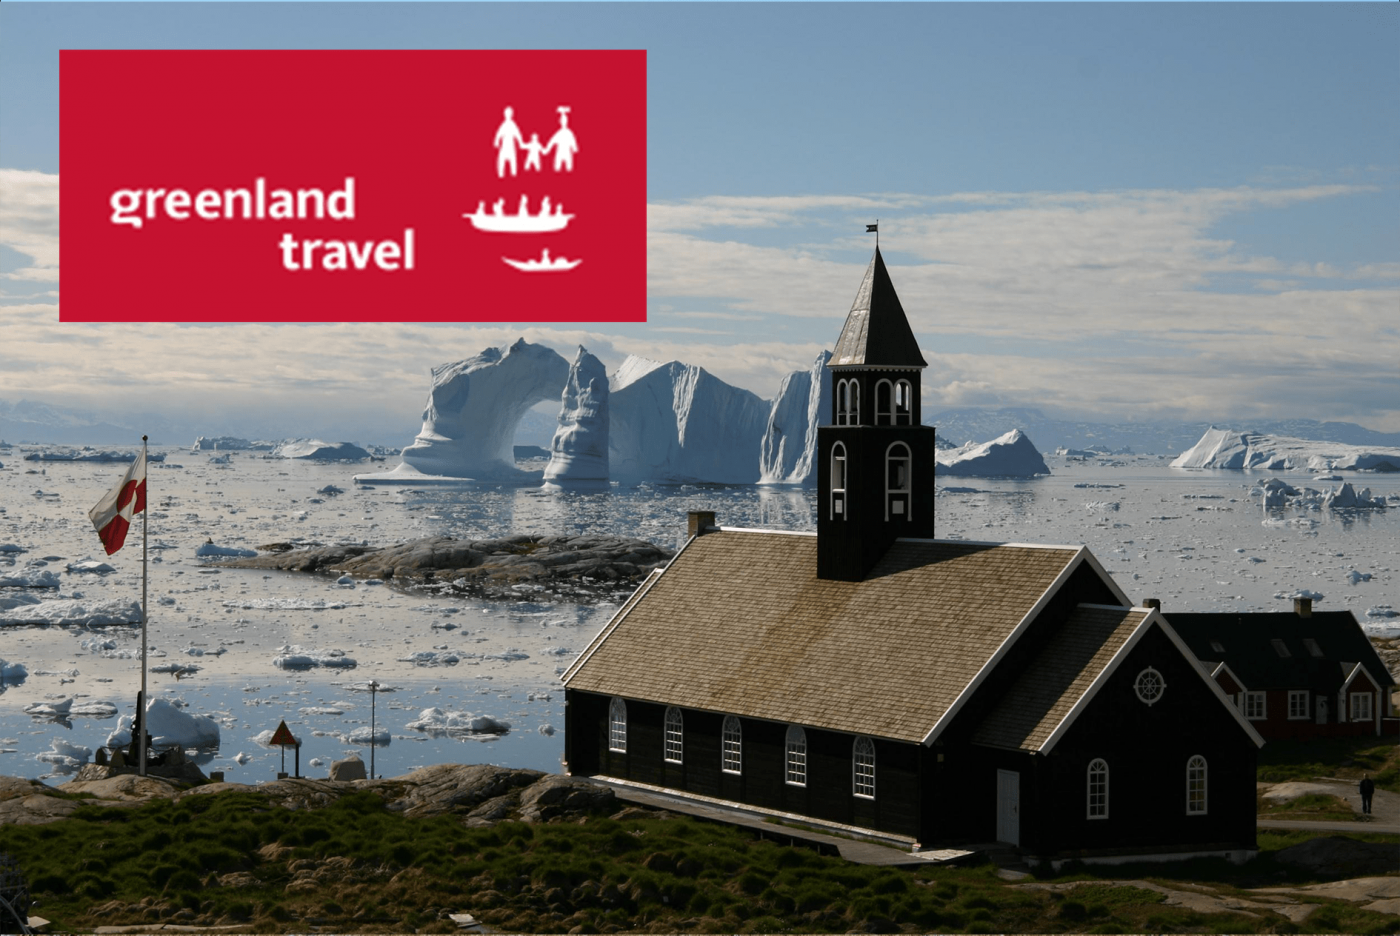 Greenland Travel: Summer impressions in Greenland